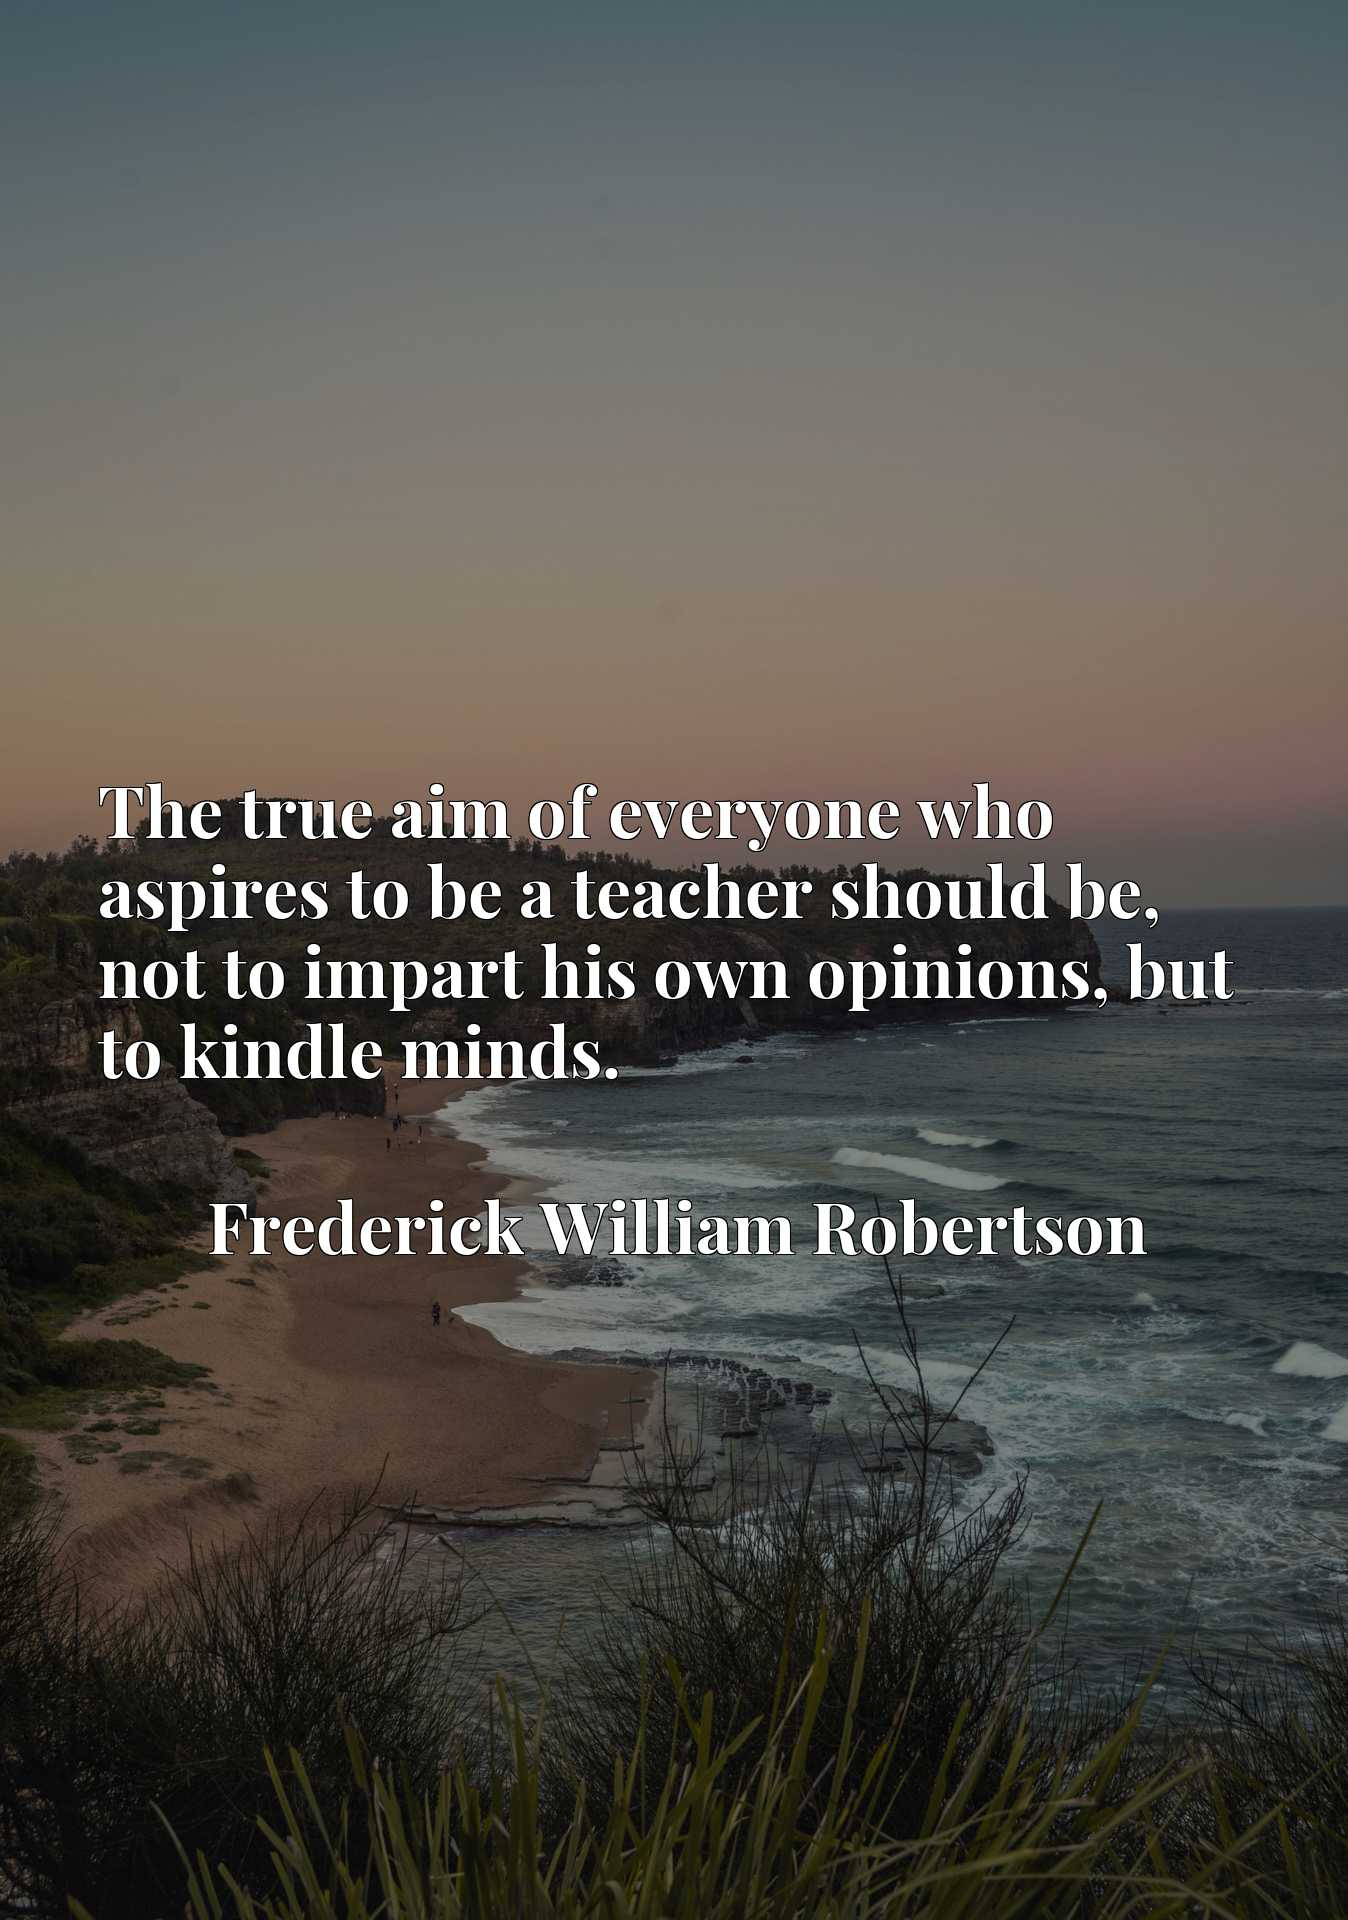 Quote Picture :The true aim of everyone who aspires to be a teacher should be, not to impart his own opinions, but to kindle minds.